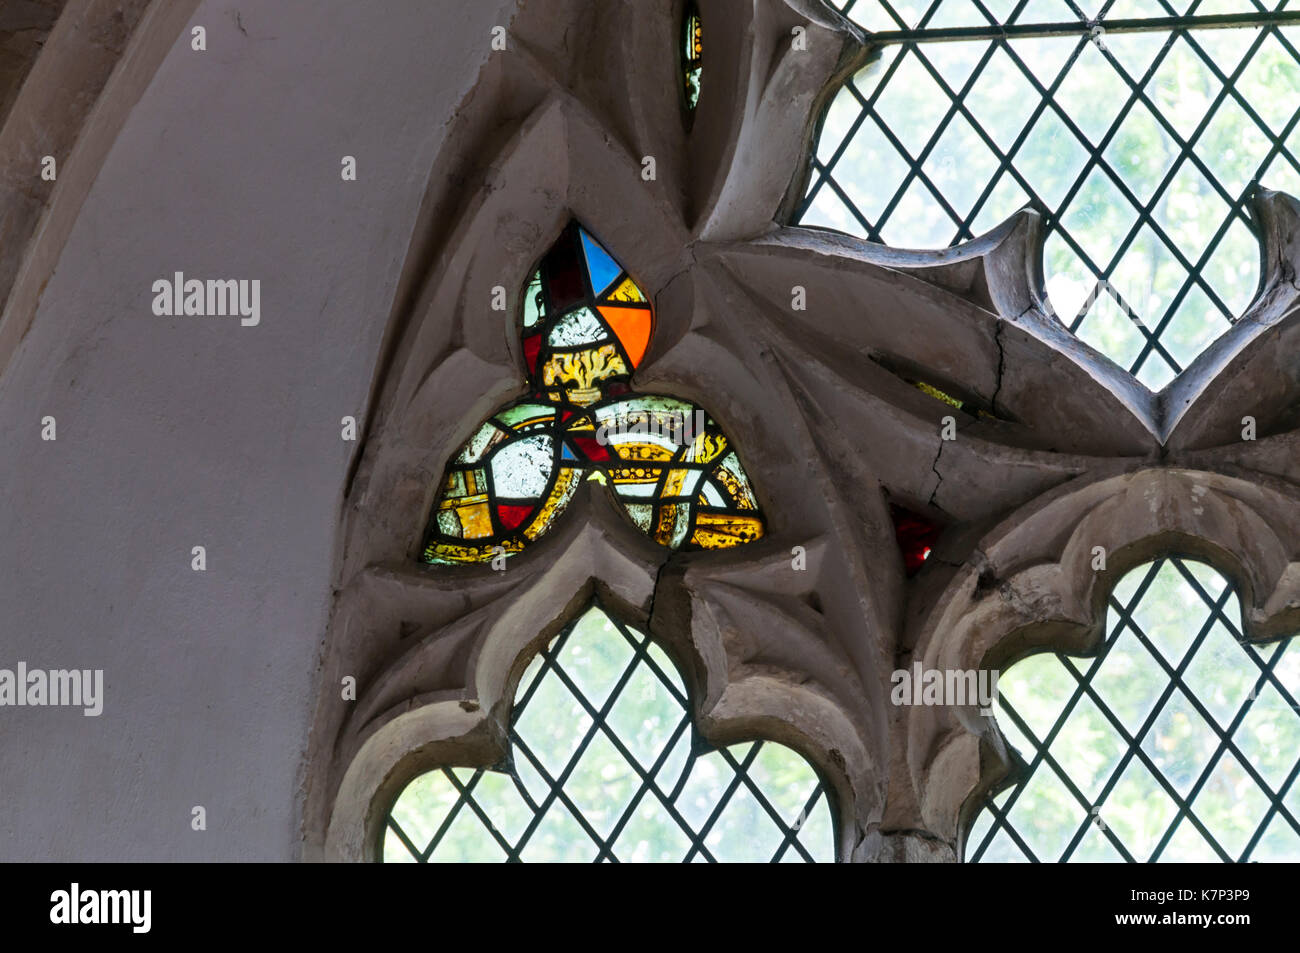 Fragments of medieval stained glass in 14th century reticulated tracery window at St Peter & St Paul church, Newchurch on Romney Marsh, Kent. - Stock Image